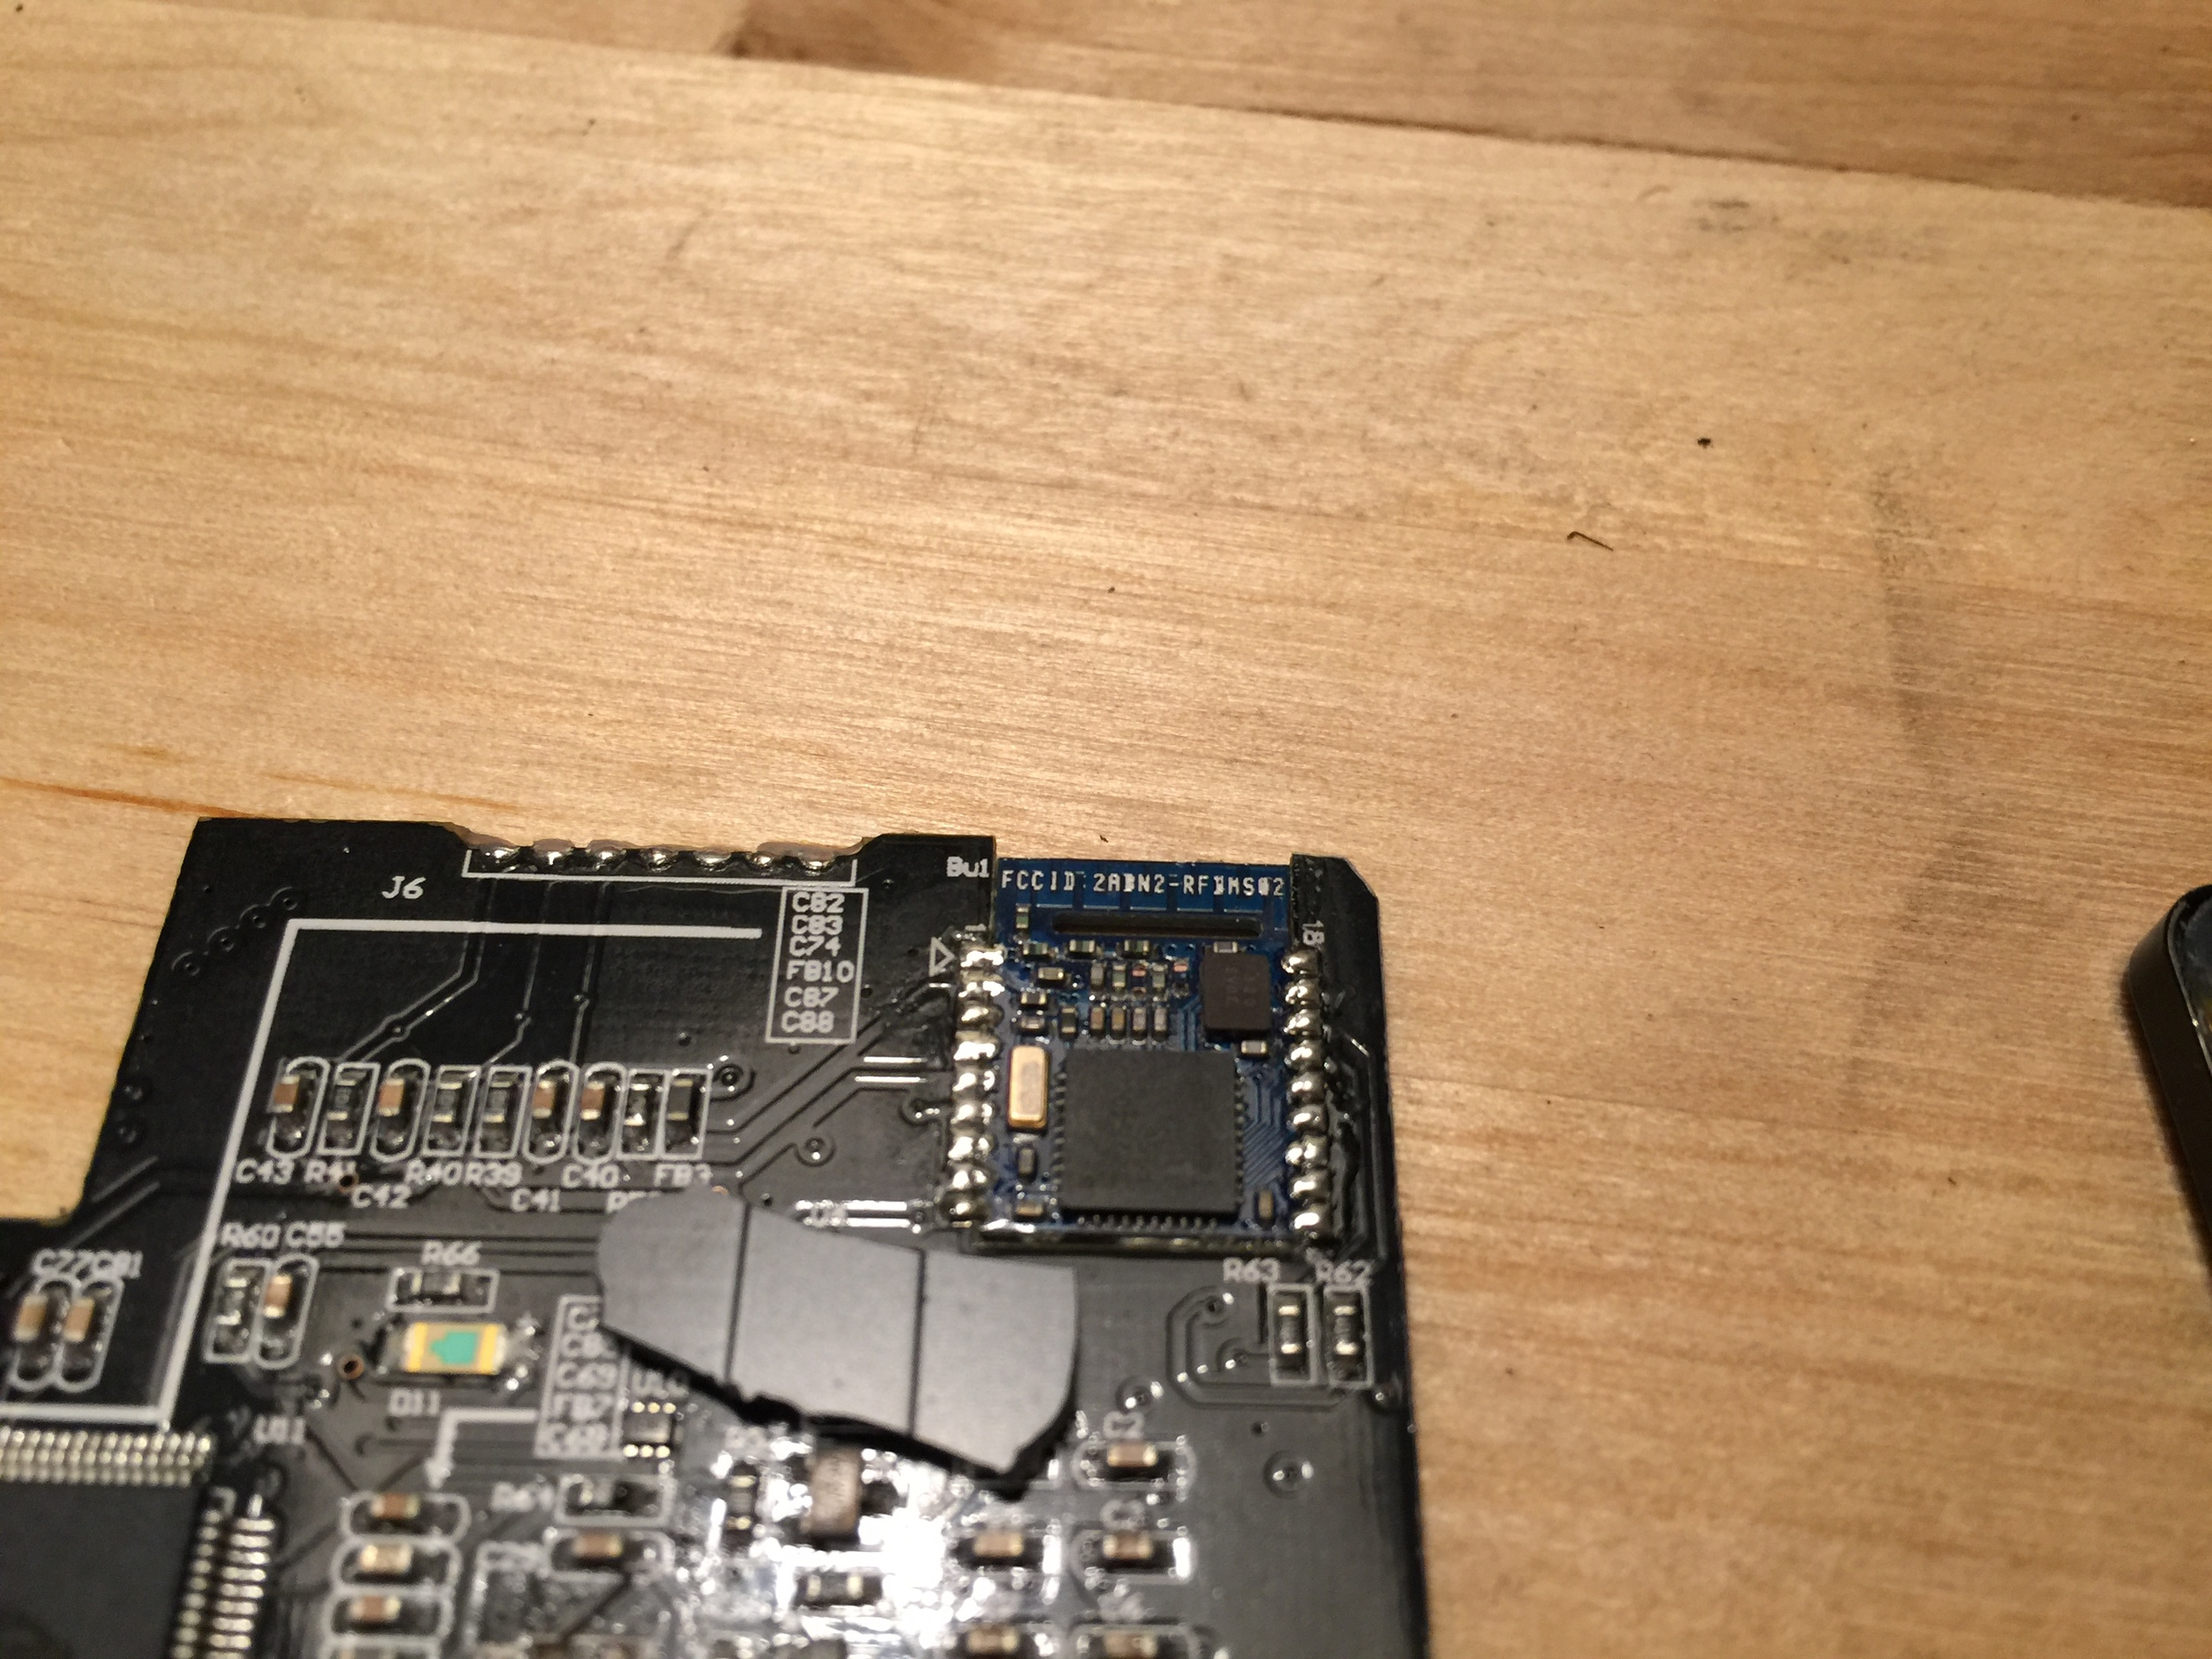 Off-the-shelf bluetooth module